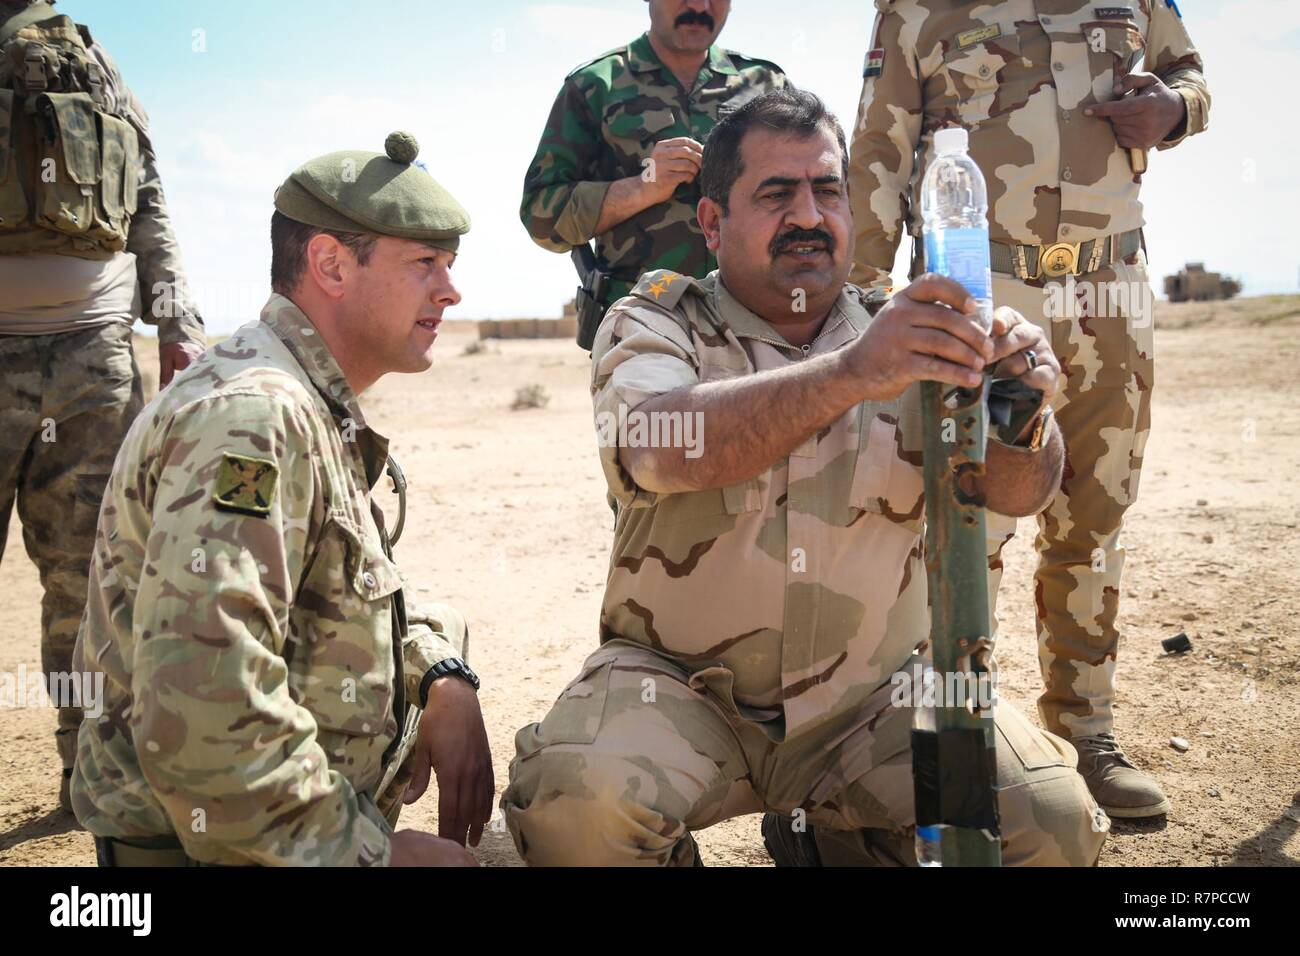 An Iraqi security forces colonel sets up a target during